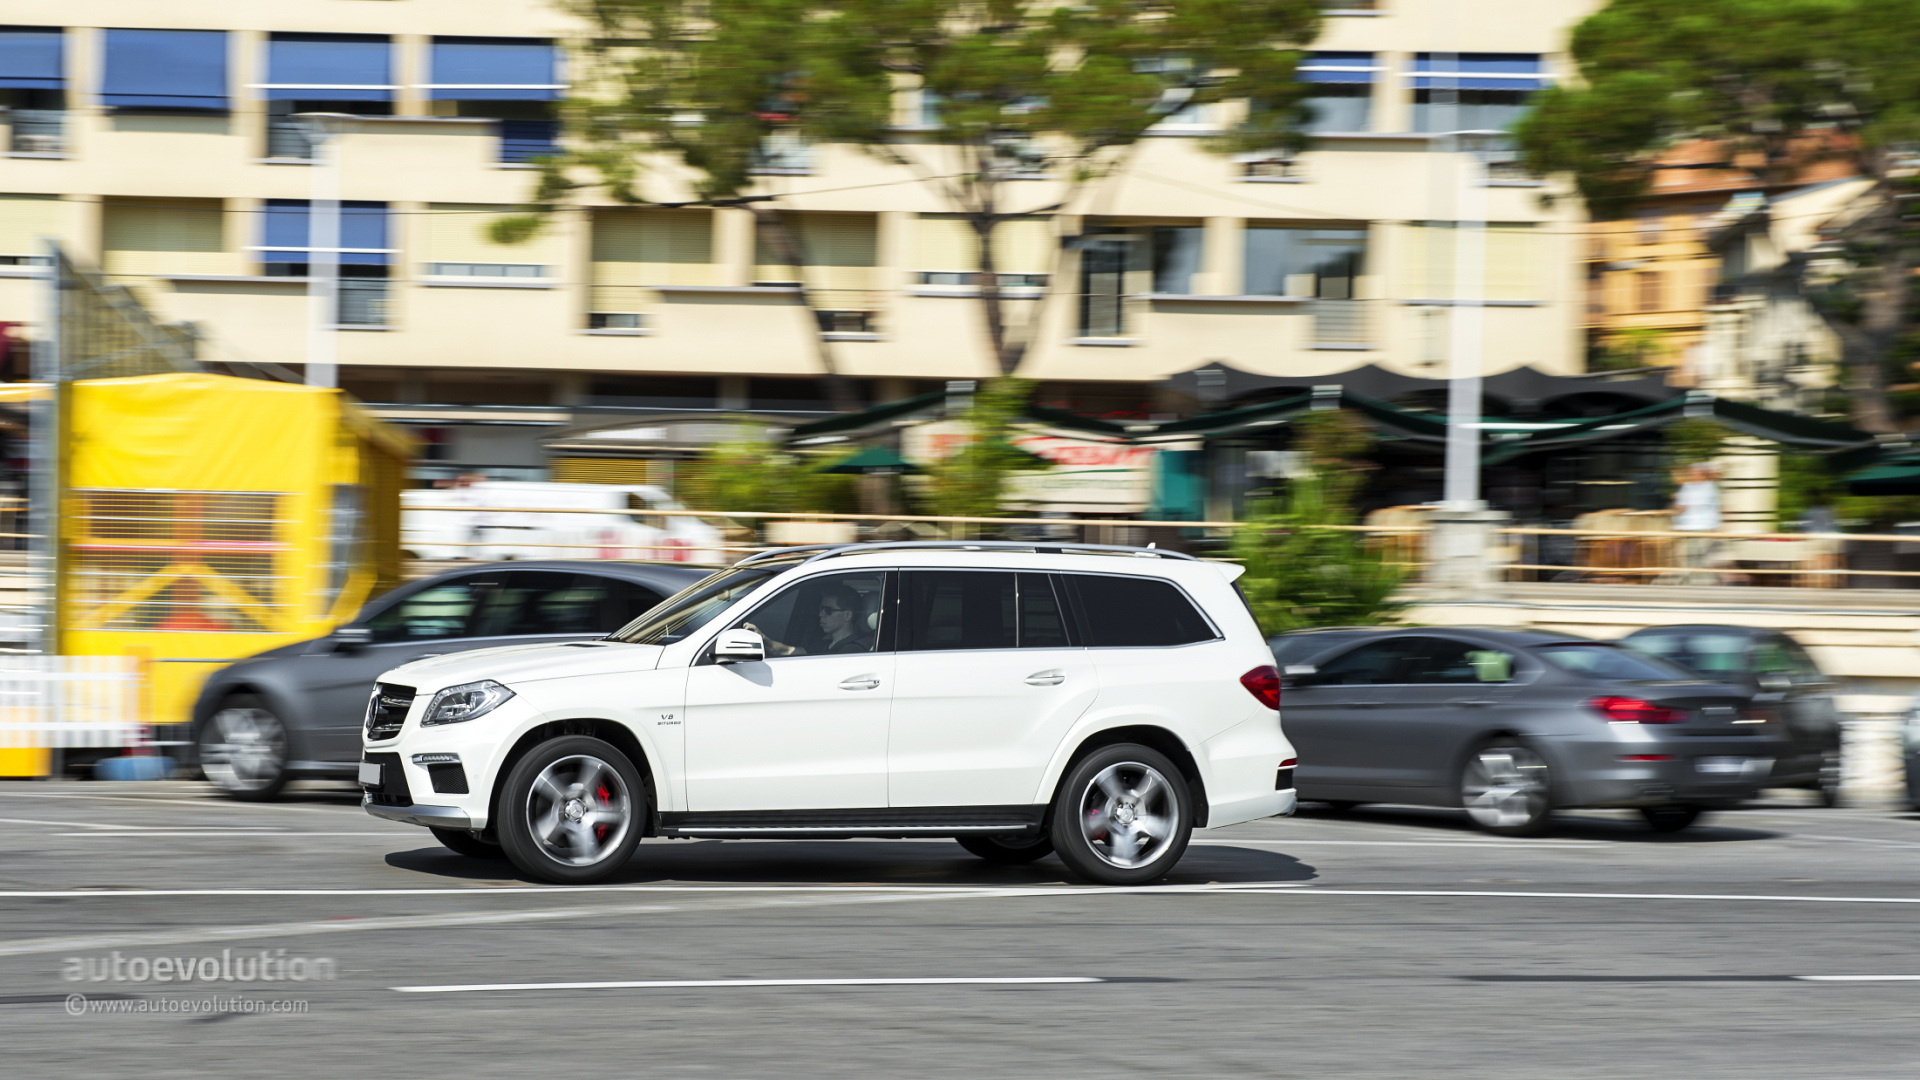 2019 Mercedes Benz GL63 AMG photo - 2